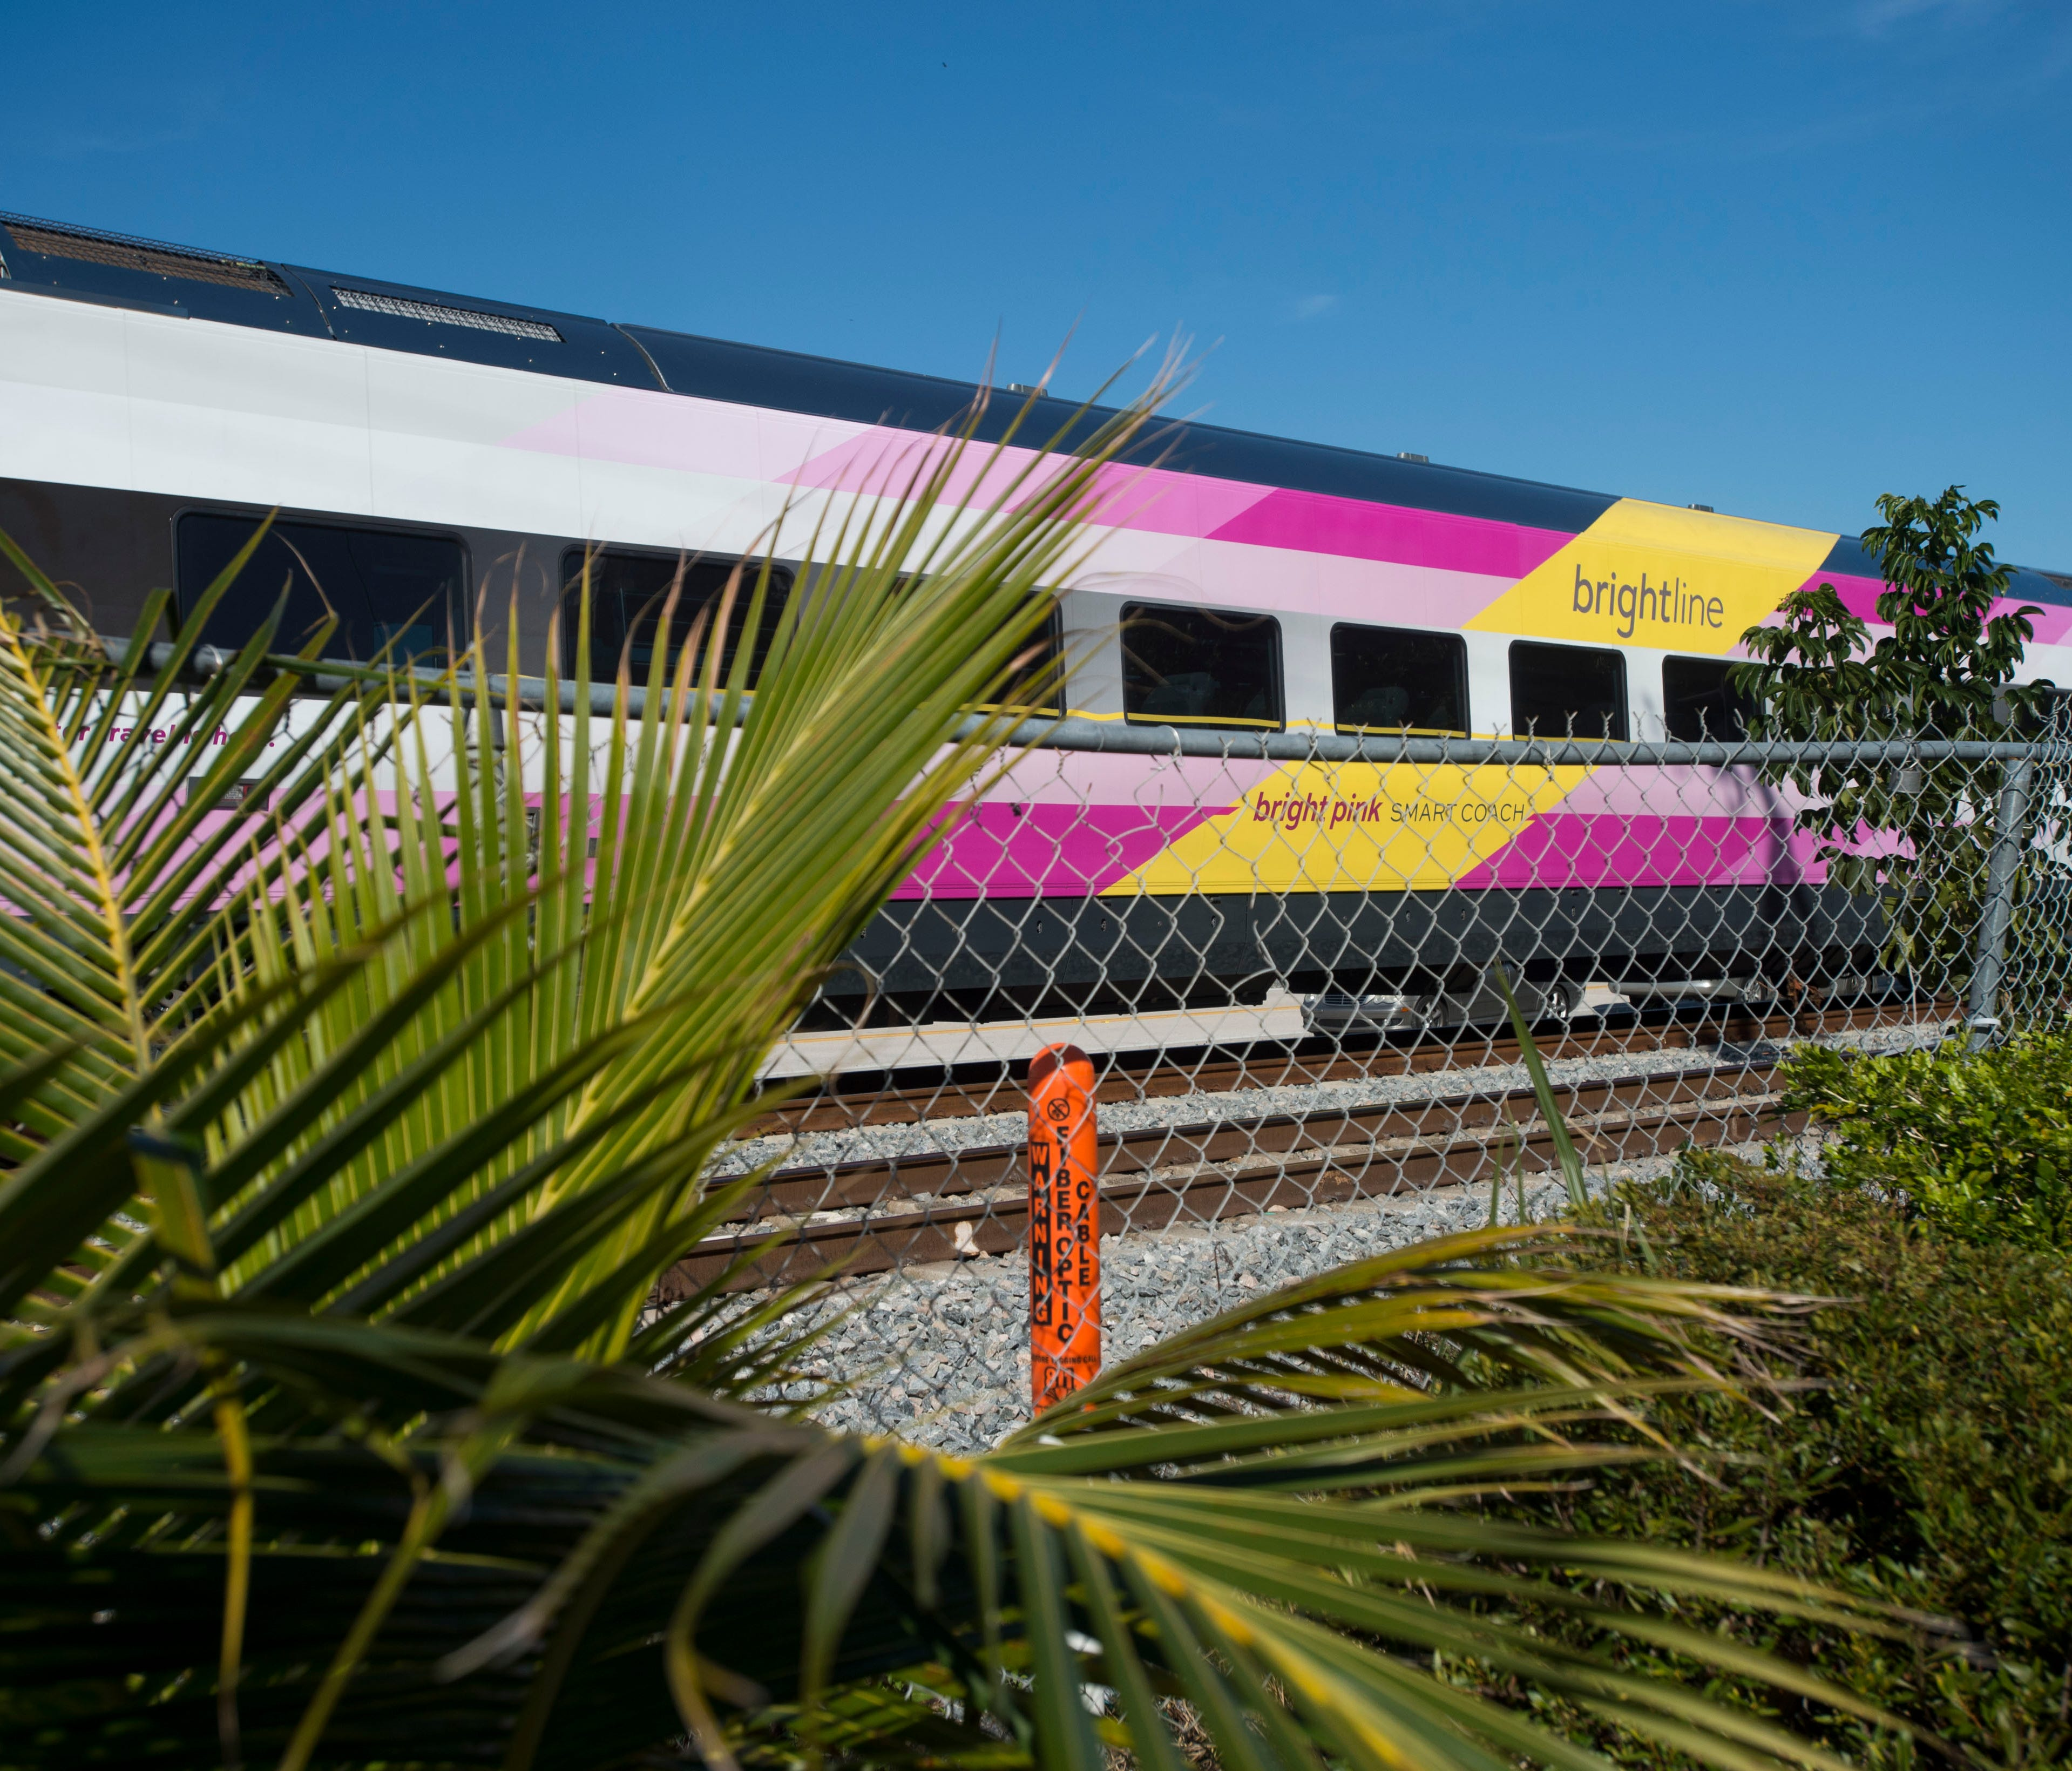 Brightline trains continue service between West Palm Beach and Fort Lauderdale, seen on Thursday, Jan. 18, 2018 in Boynton Beach. Two people have died in a week being hit by Brightline trains in Boynton Beach.